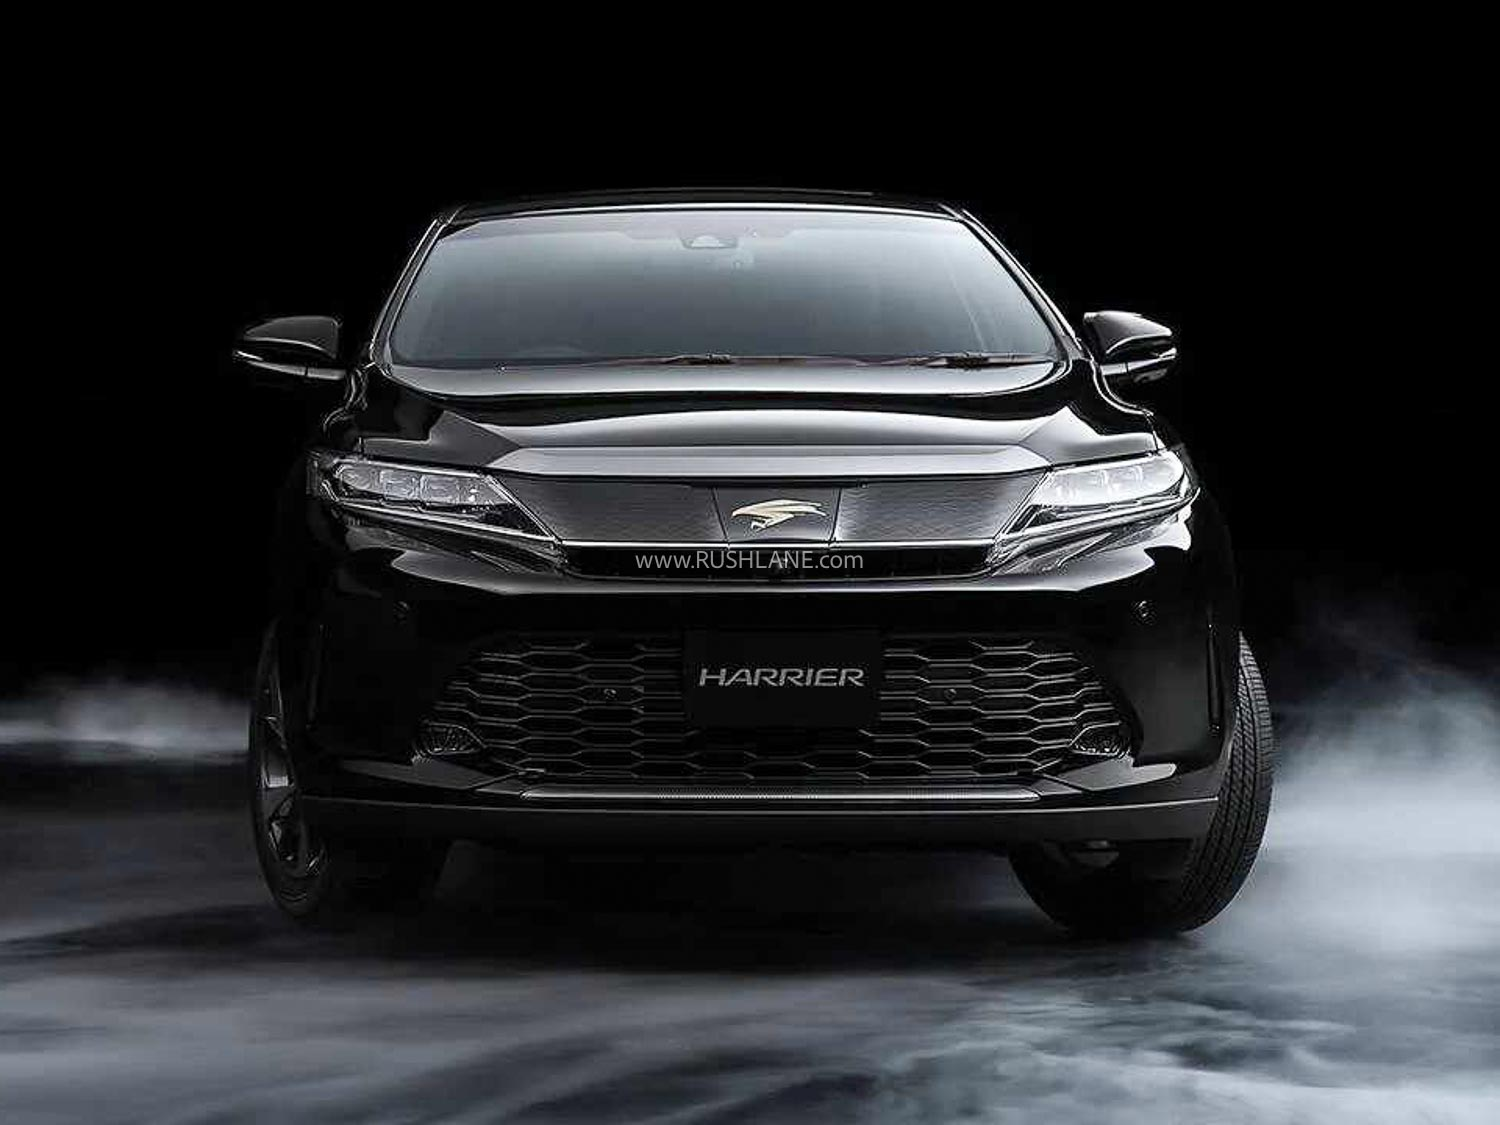 2021 toyota harrier next-gen first photos and details leaked